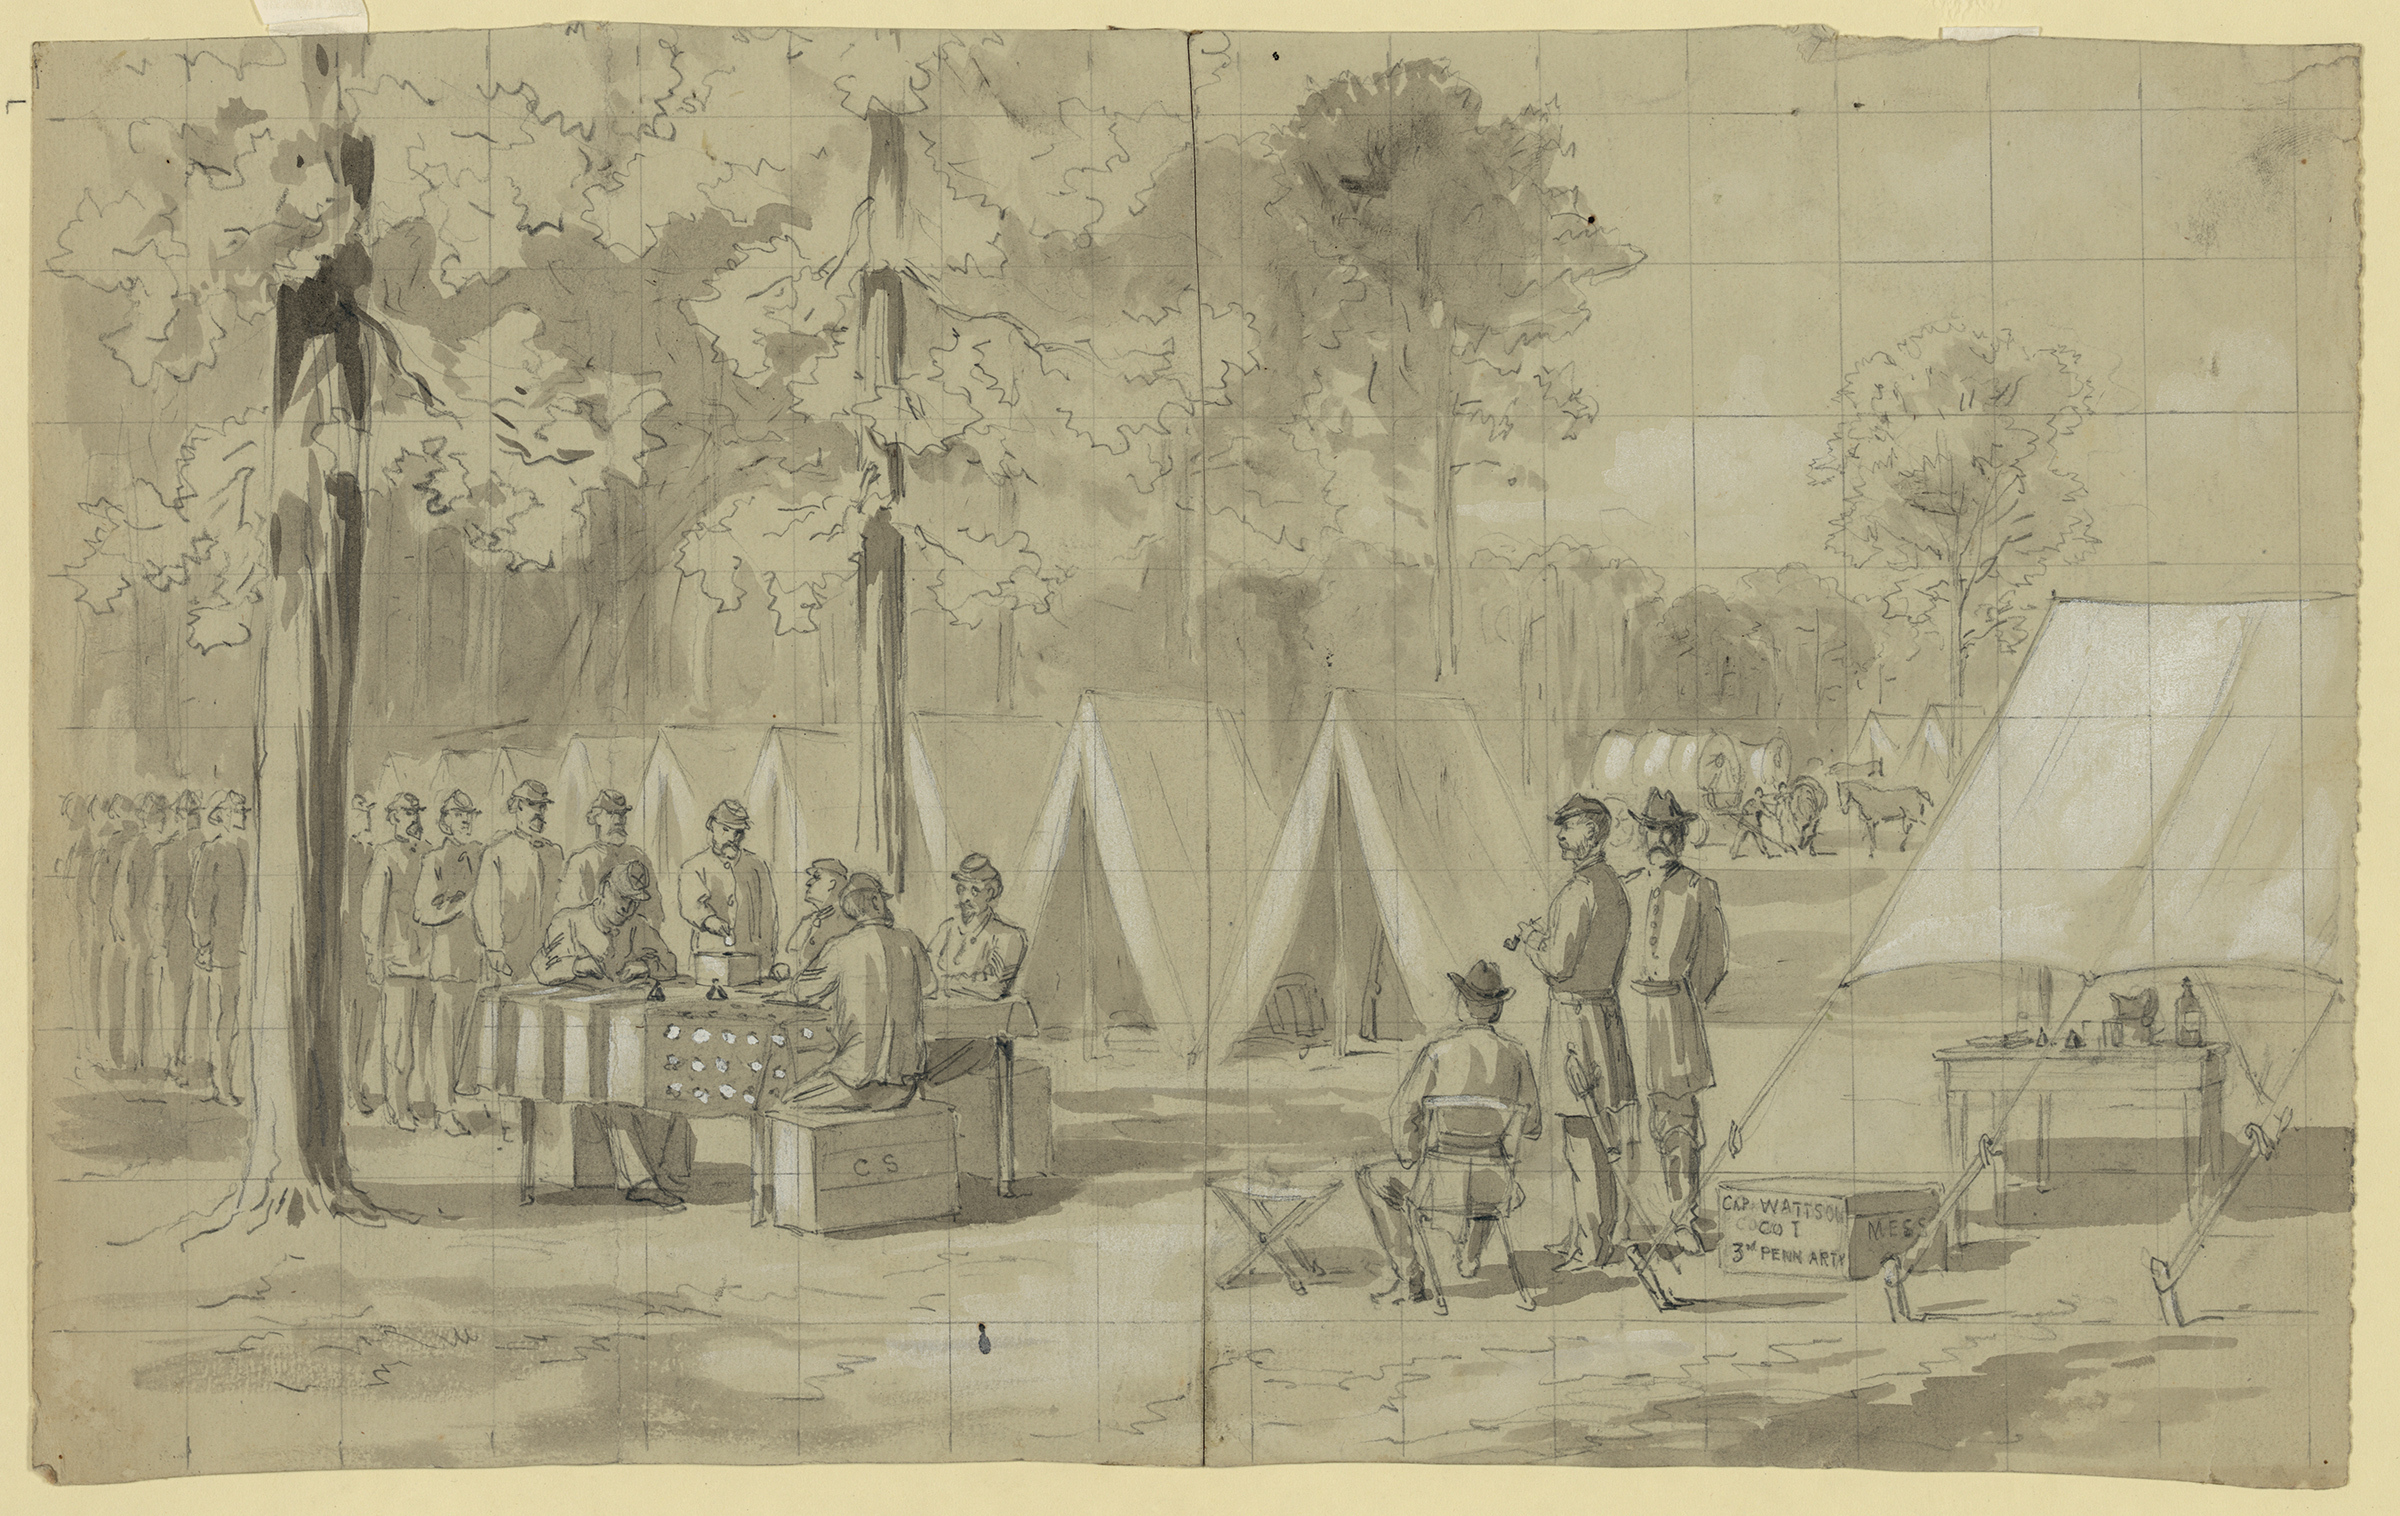 An illustration of Pennsylvania soldiers voting published in the Oct. 29, 1864, issue of Harpers's Weekly.